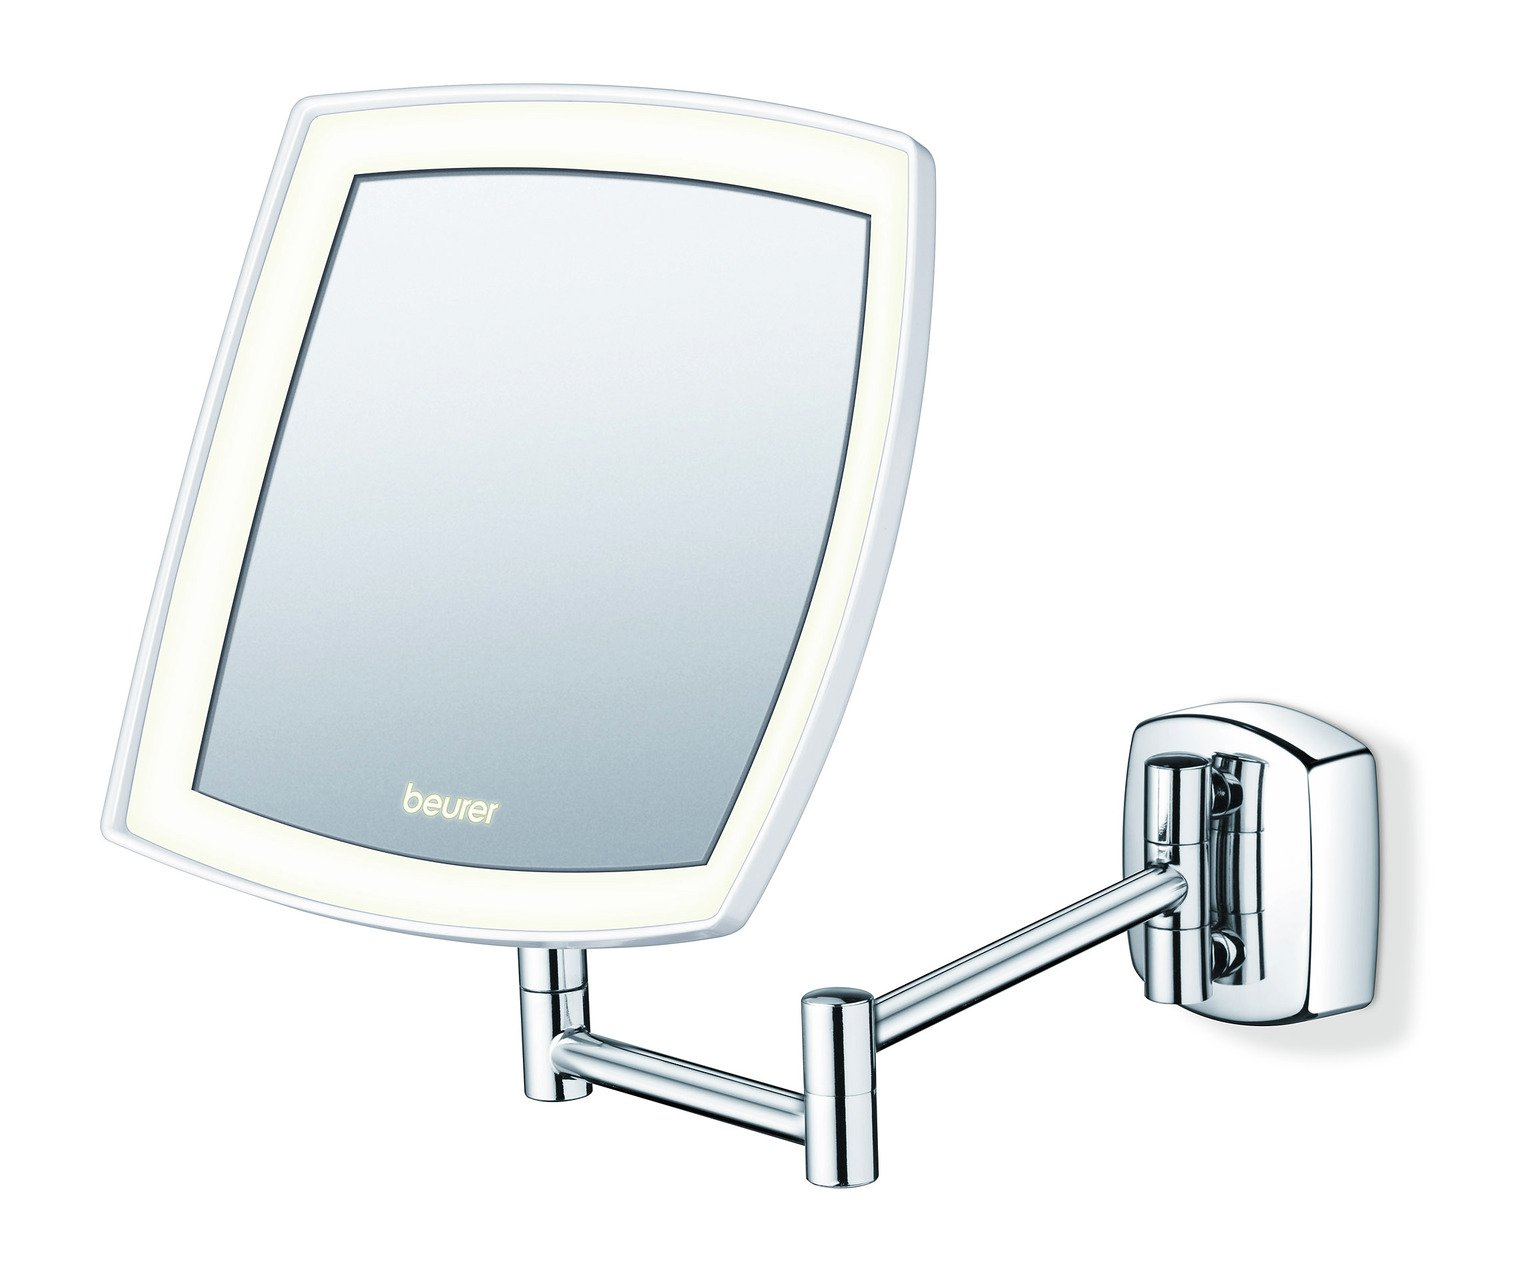 Beurer BS89 Illuminated LED Wall Mirror - Chrome